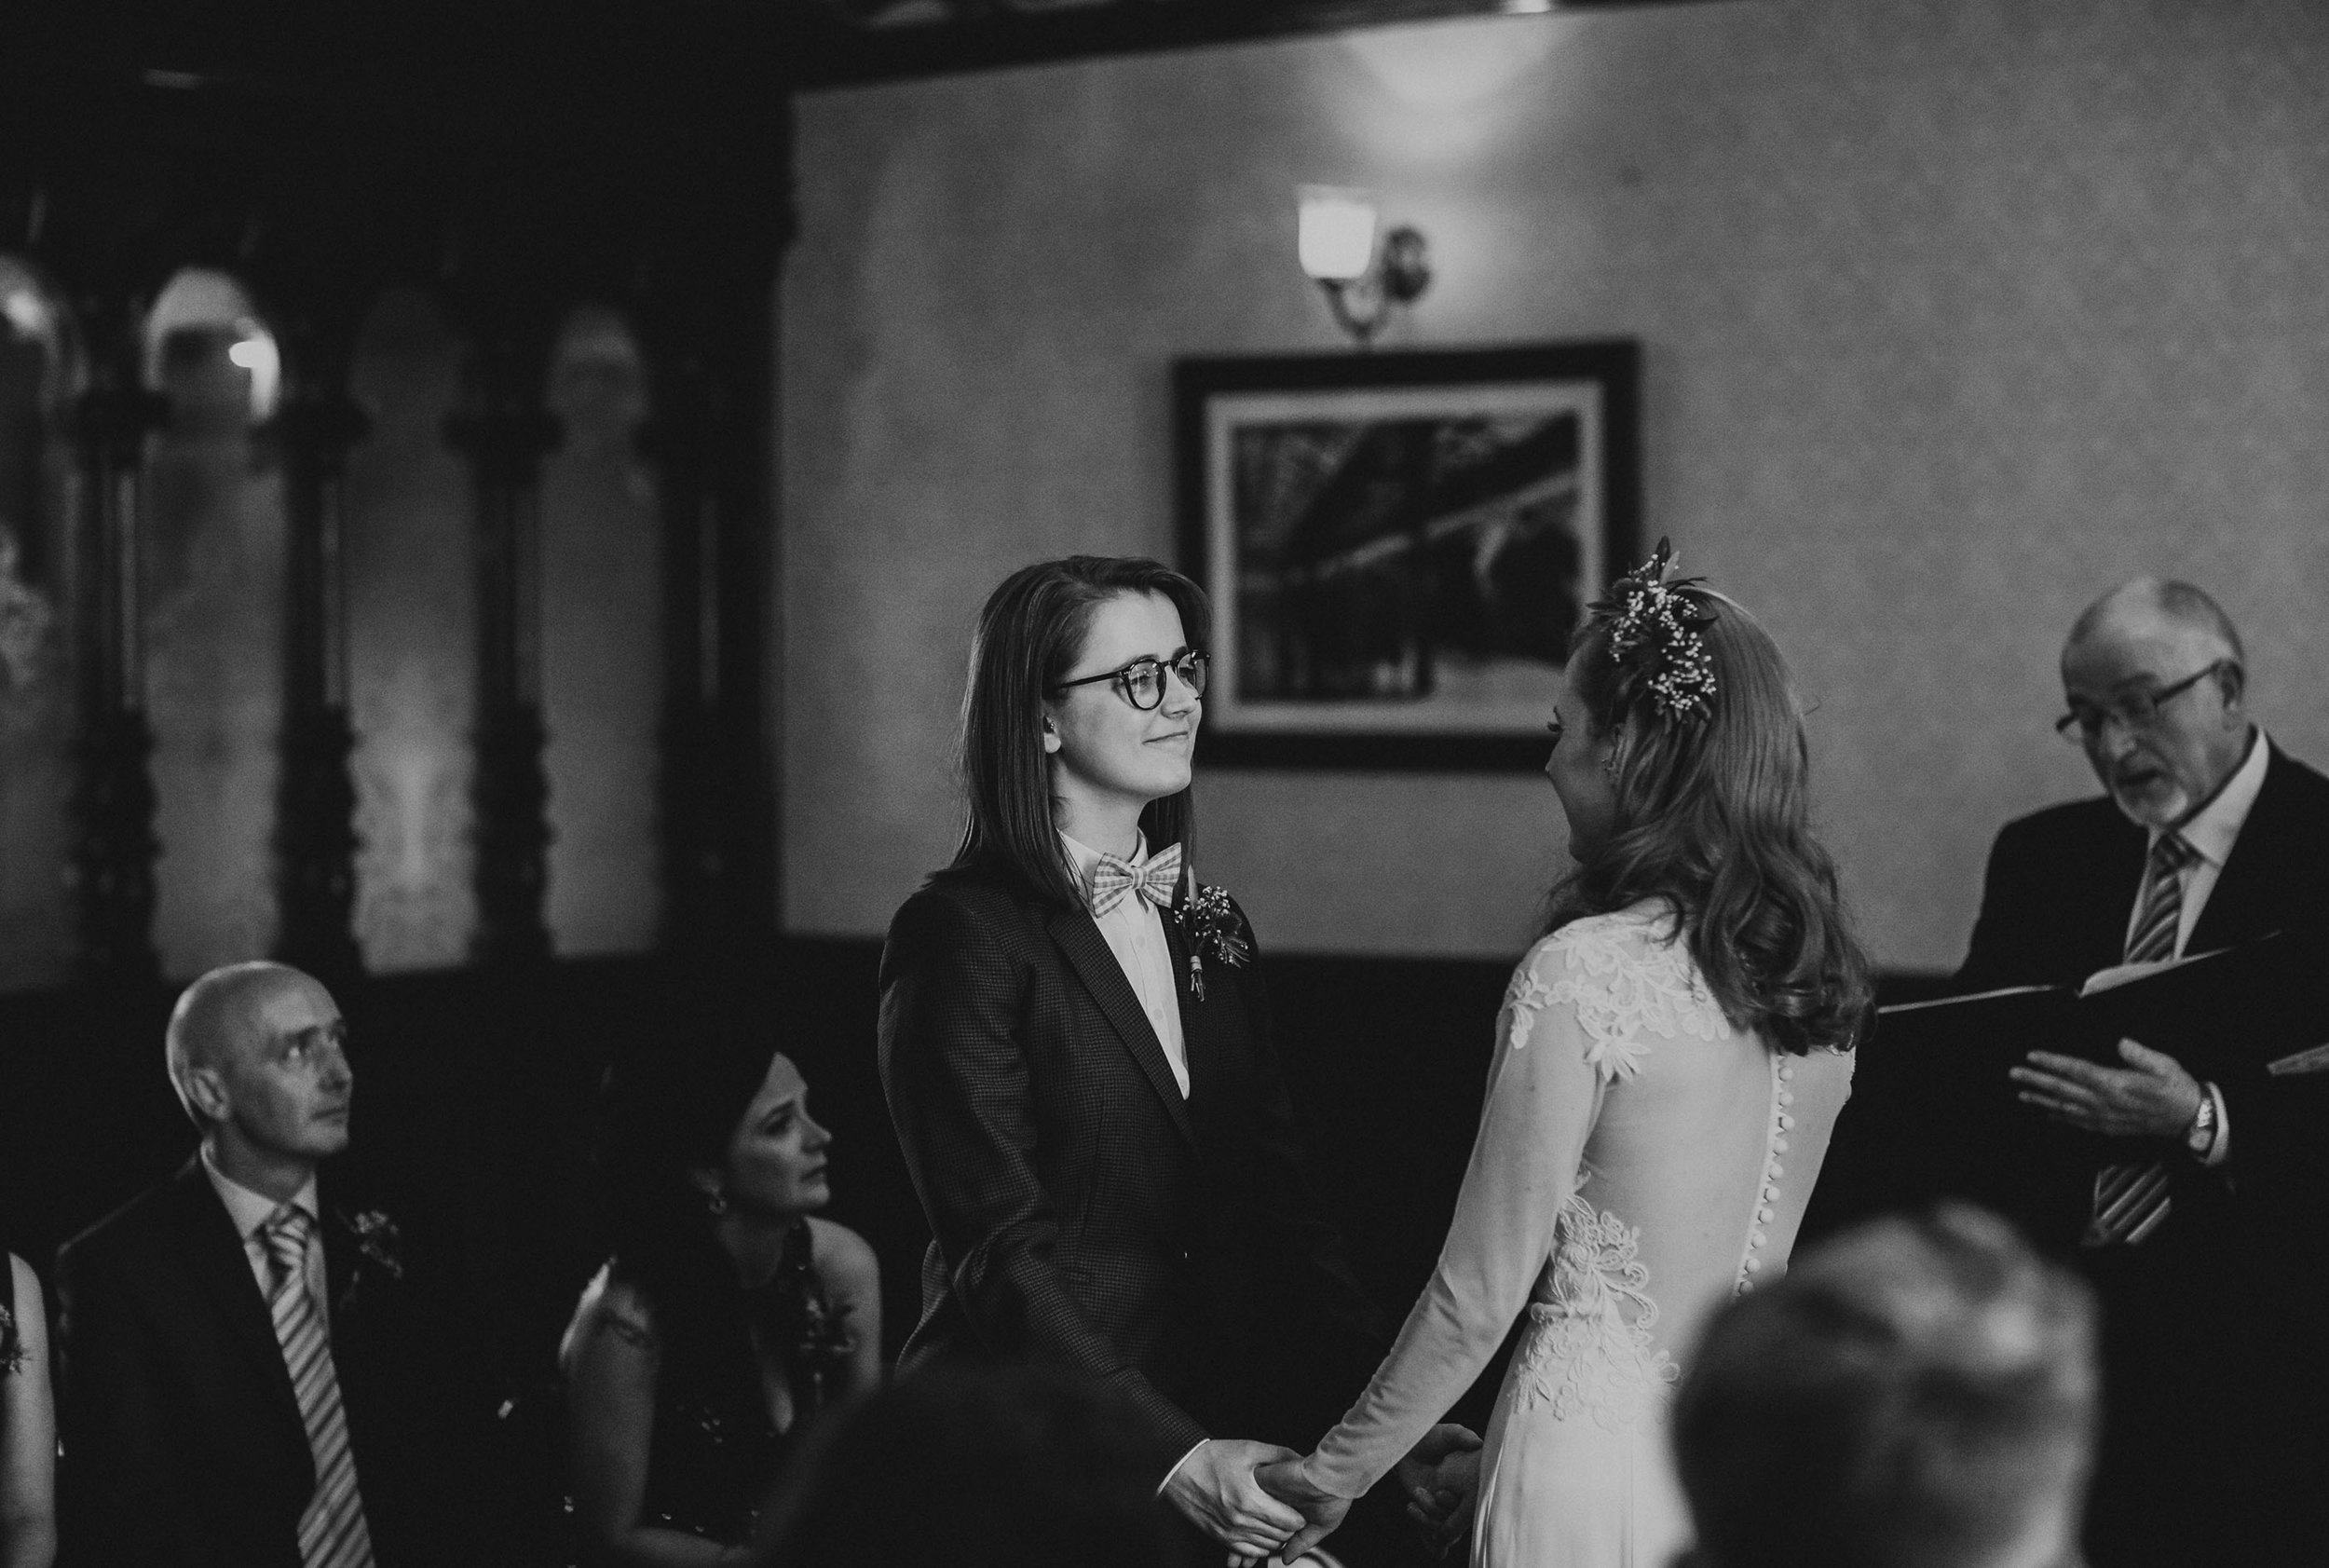 SAME_SEX_WEDDING_PHOTOGRAPHER_SLOANS_GLASGOW_PJ_PHILLIPS_PHOTOGRAPHY_39.jpg